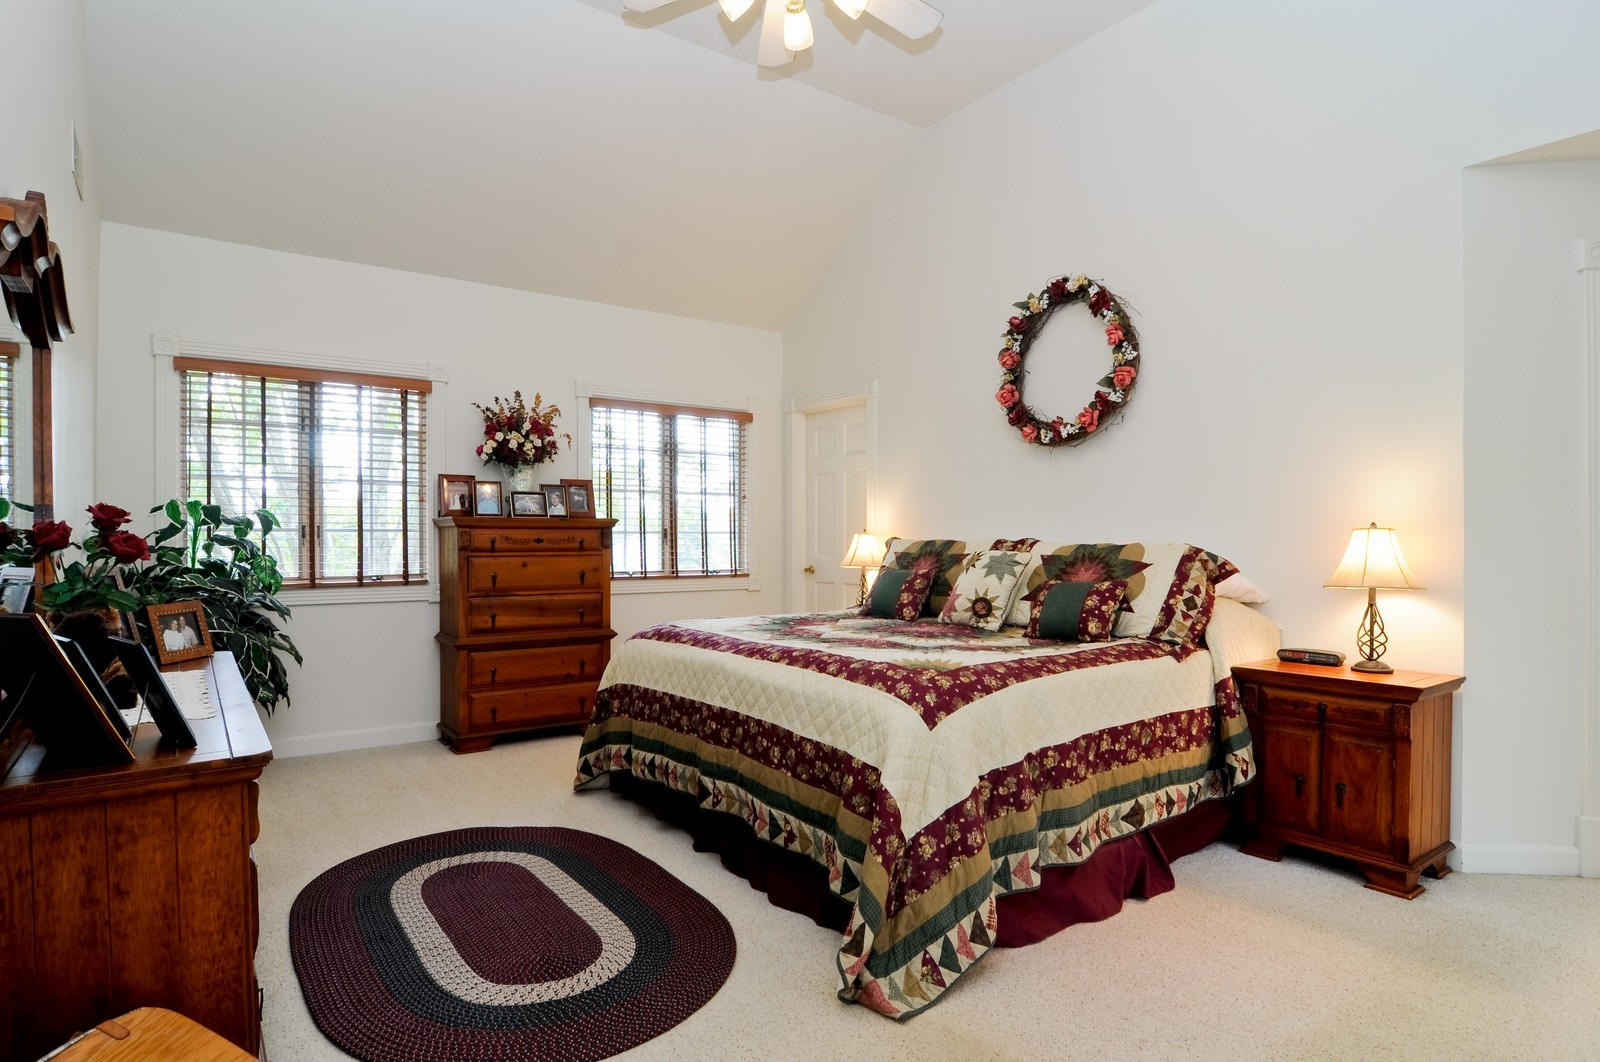 Real Estate Photography - 22988 W Thornhill Ct, Deer Park, IL, 60010 - Master Bedroom